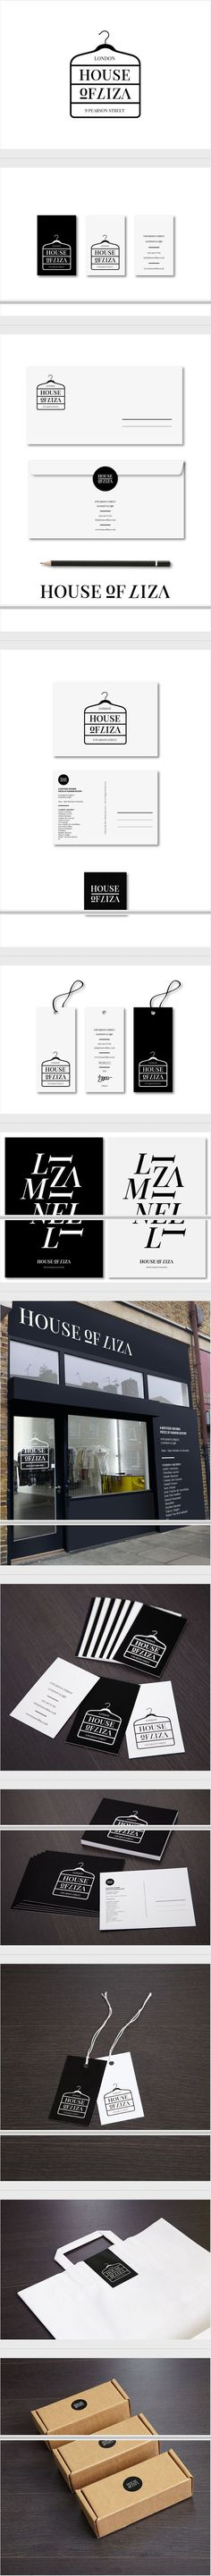 More black and white House of Liza / 2012 identity packaging branding curated by Packaging Diva PD Graphisches Design, Logo Design, Design Poster, Brand Identity Design, Corporate Design, Graphic Design Typography, Branding Design, Corporate Identity, Visual Identity